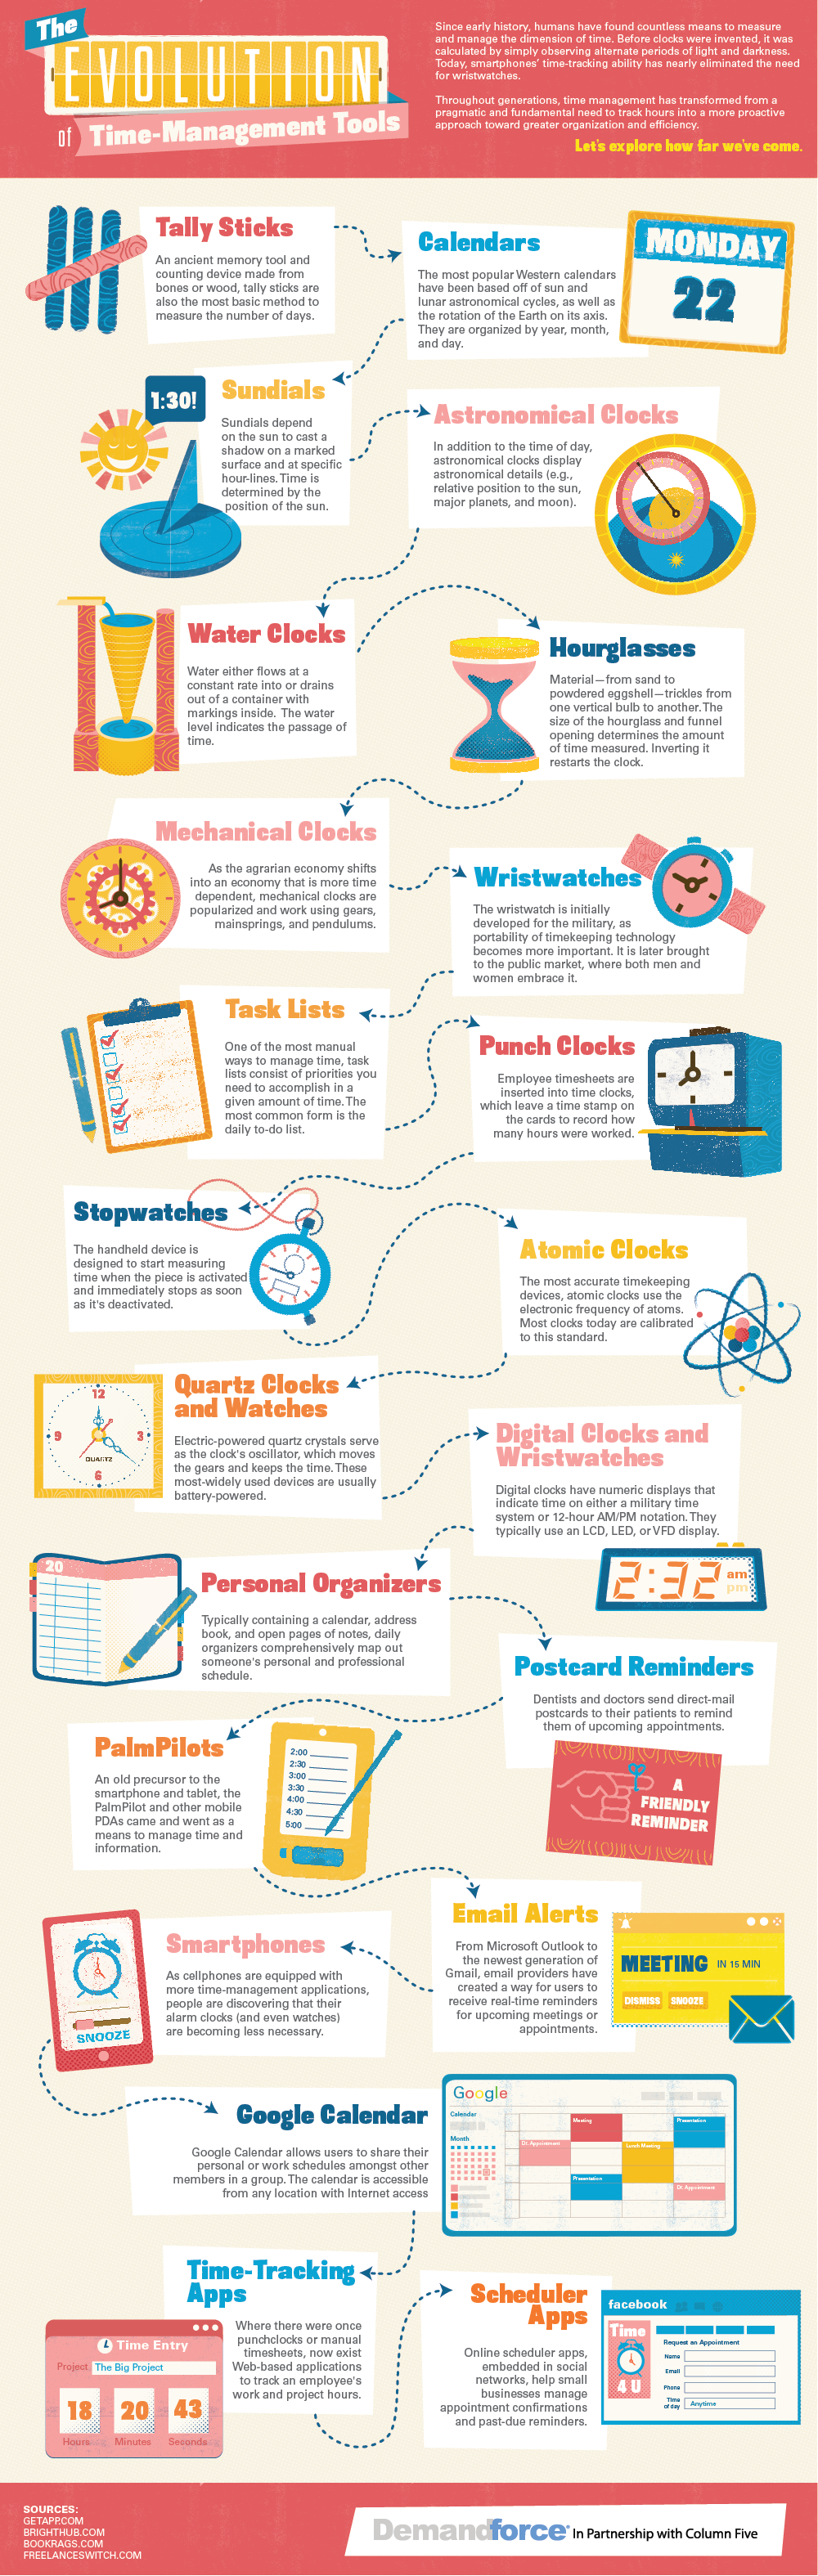 The evolution of time management tools